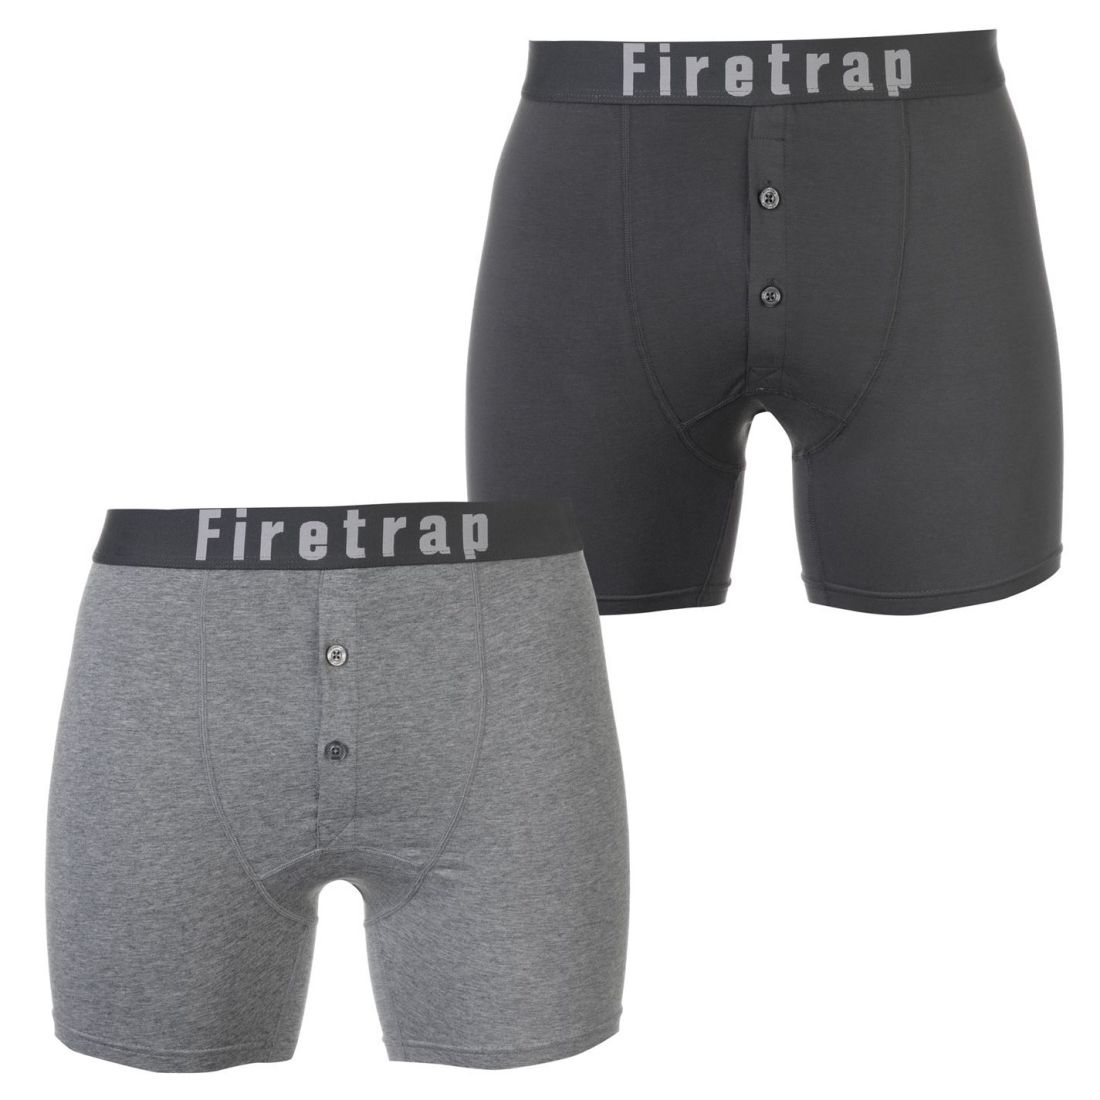 2d699d5a9ddd Image is loading Mens-Firetrap-2-Pack-Boxers-Boxer-Underwear-Stripe-